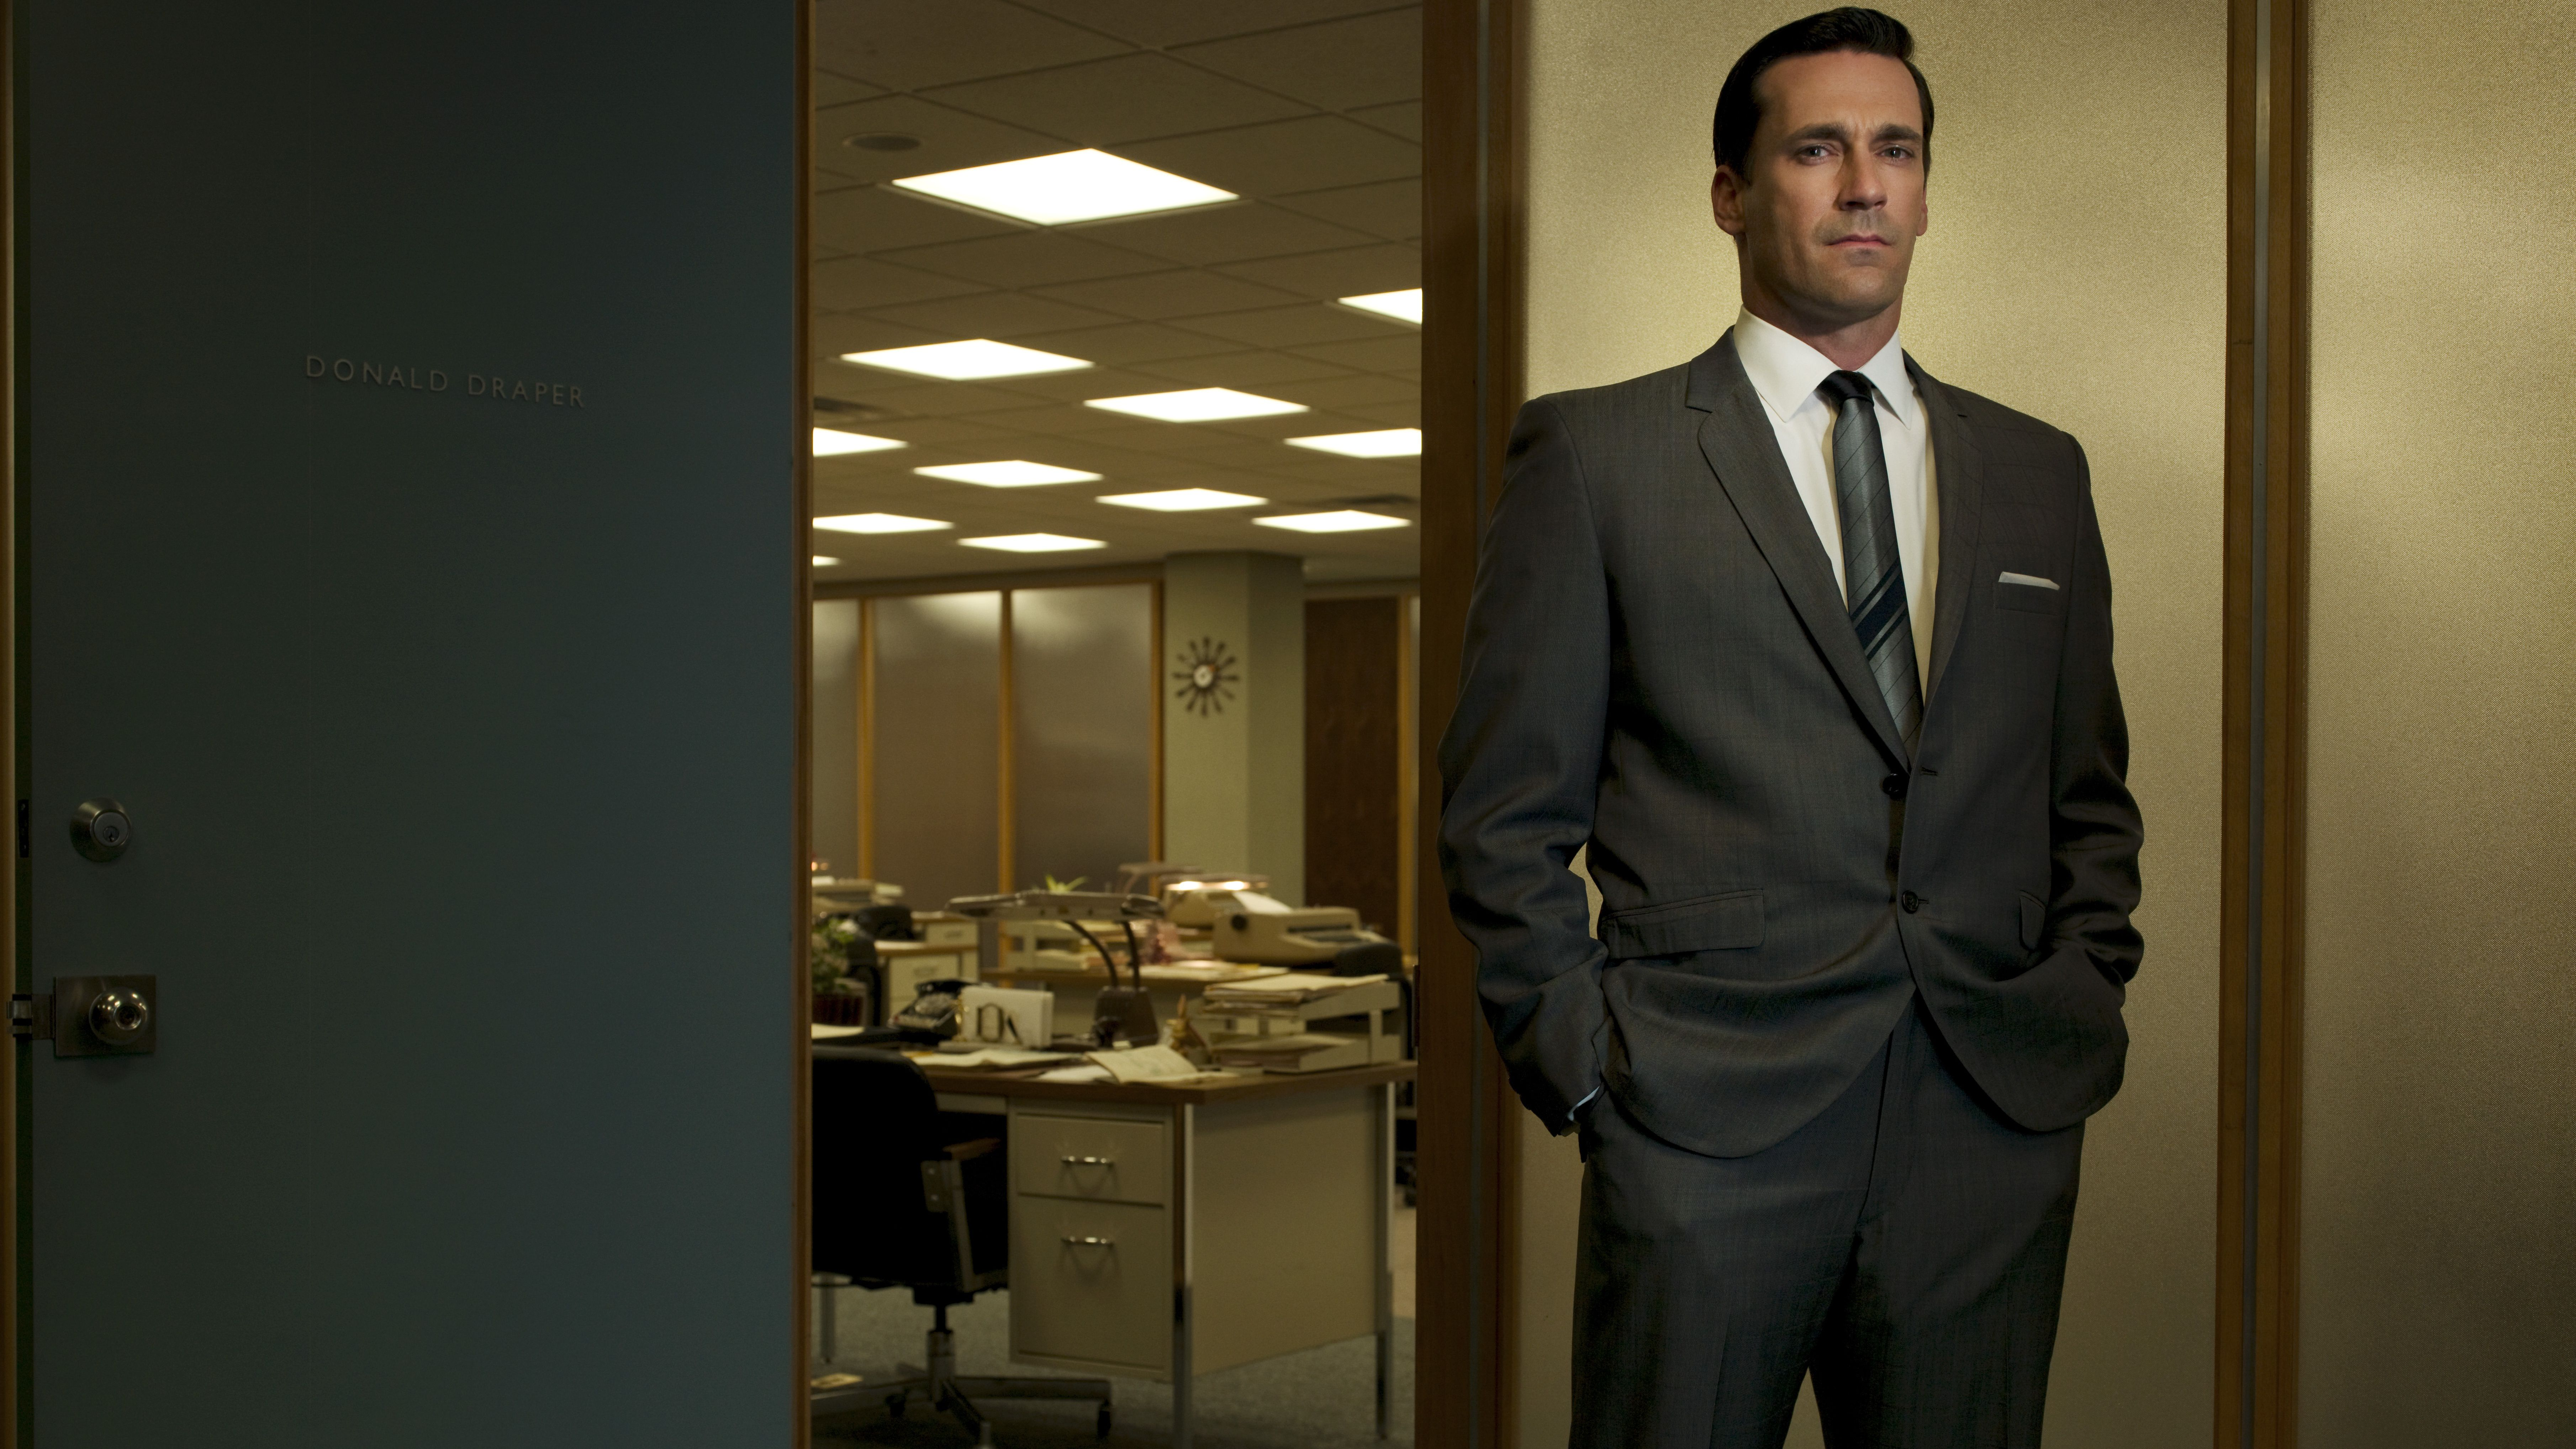 Don Draper Office As Mad Men Created New Demand For Suits J Crew Stepped